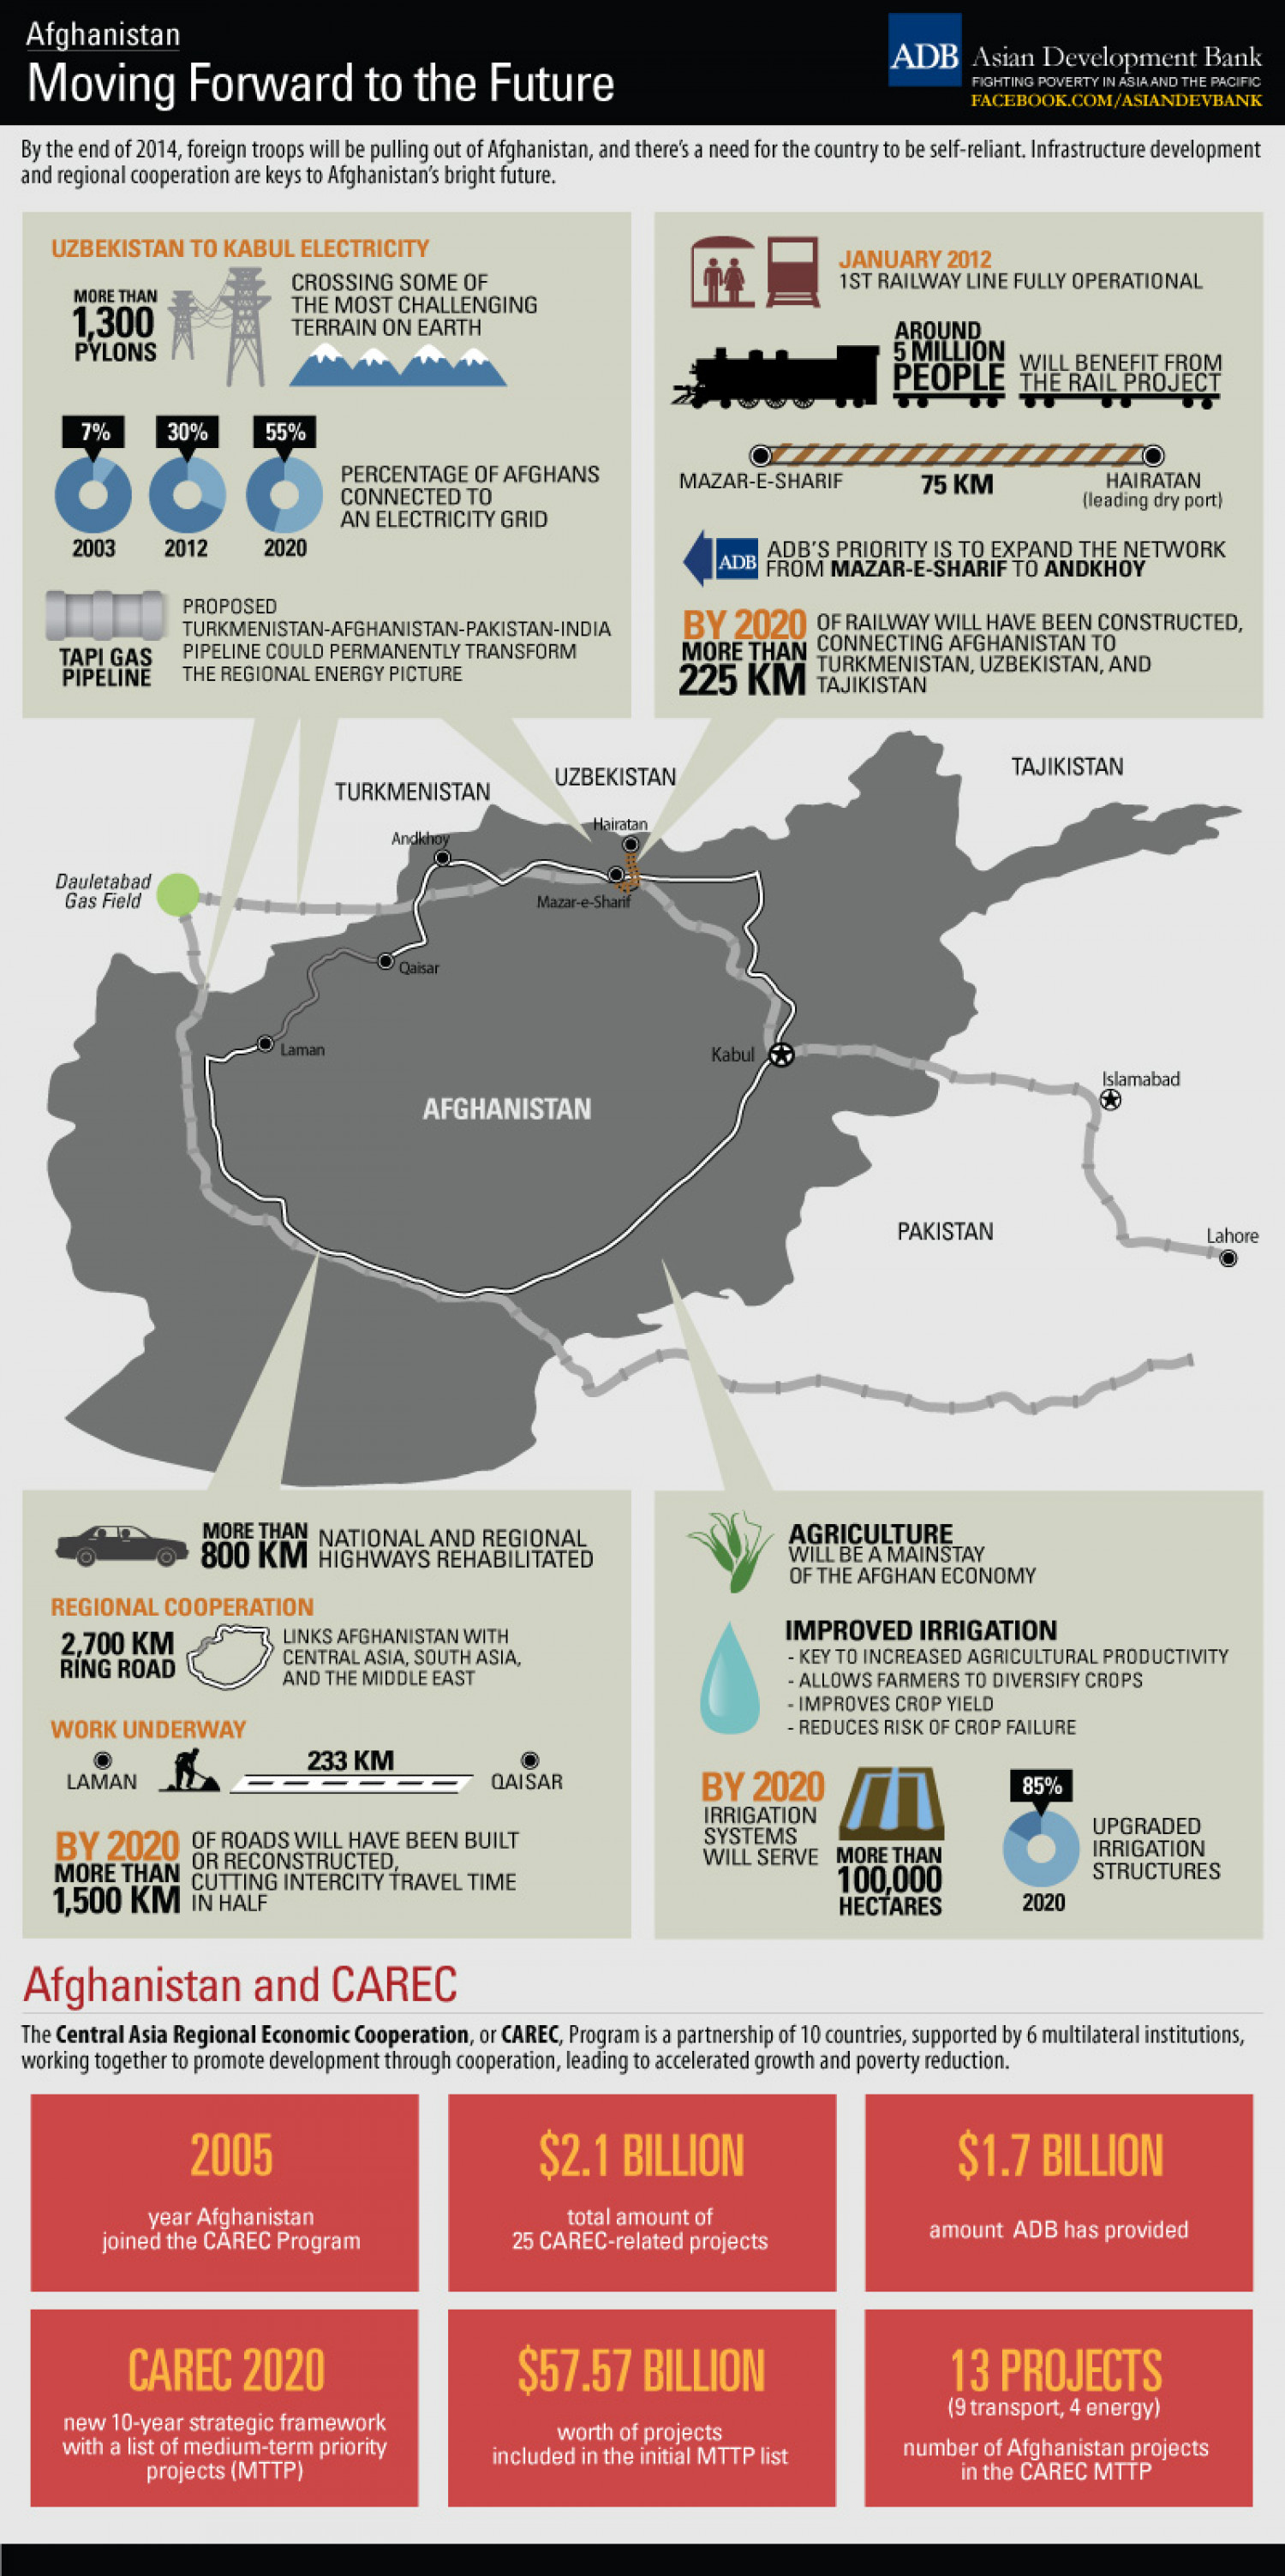 Afghanistan: Moving Forward to the Future Infographic